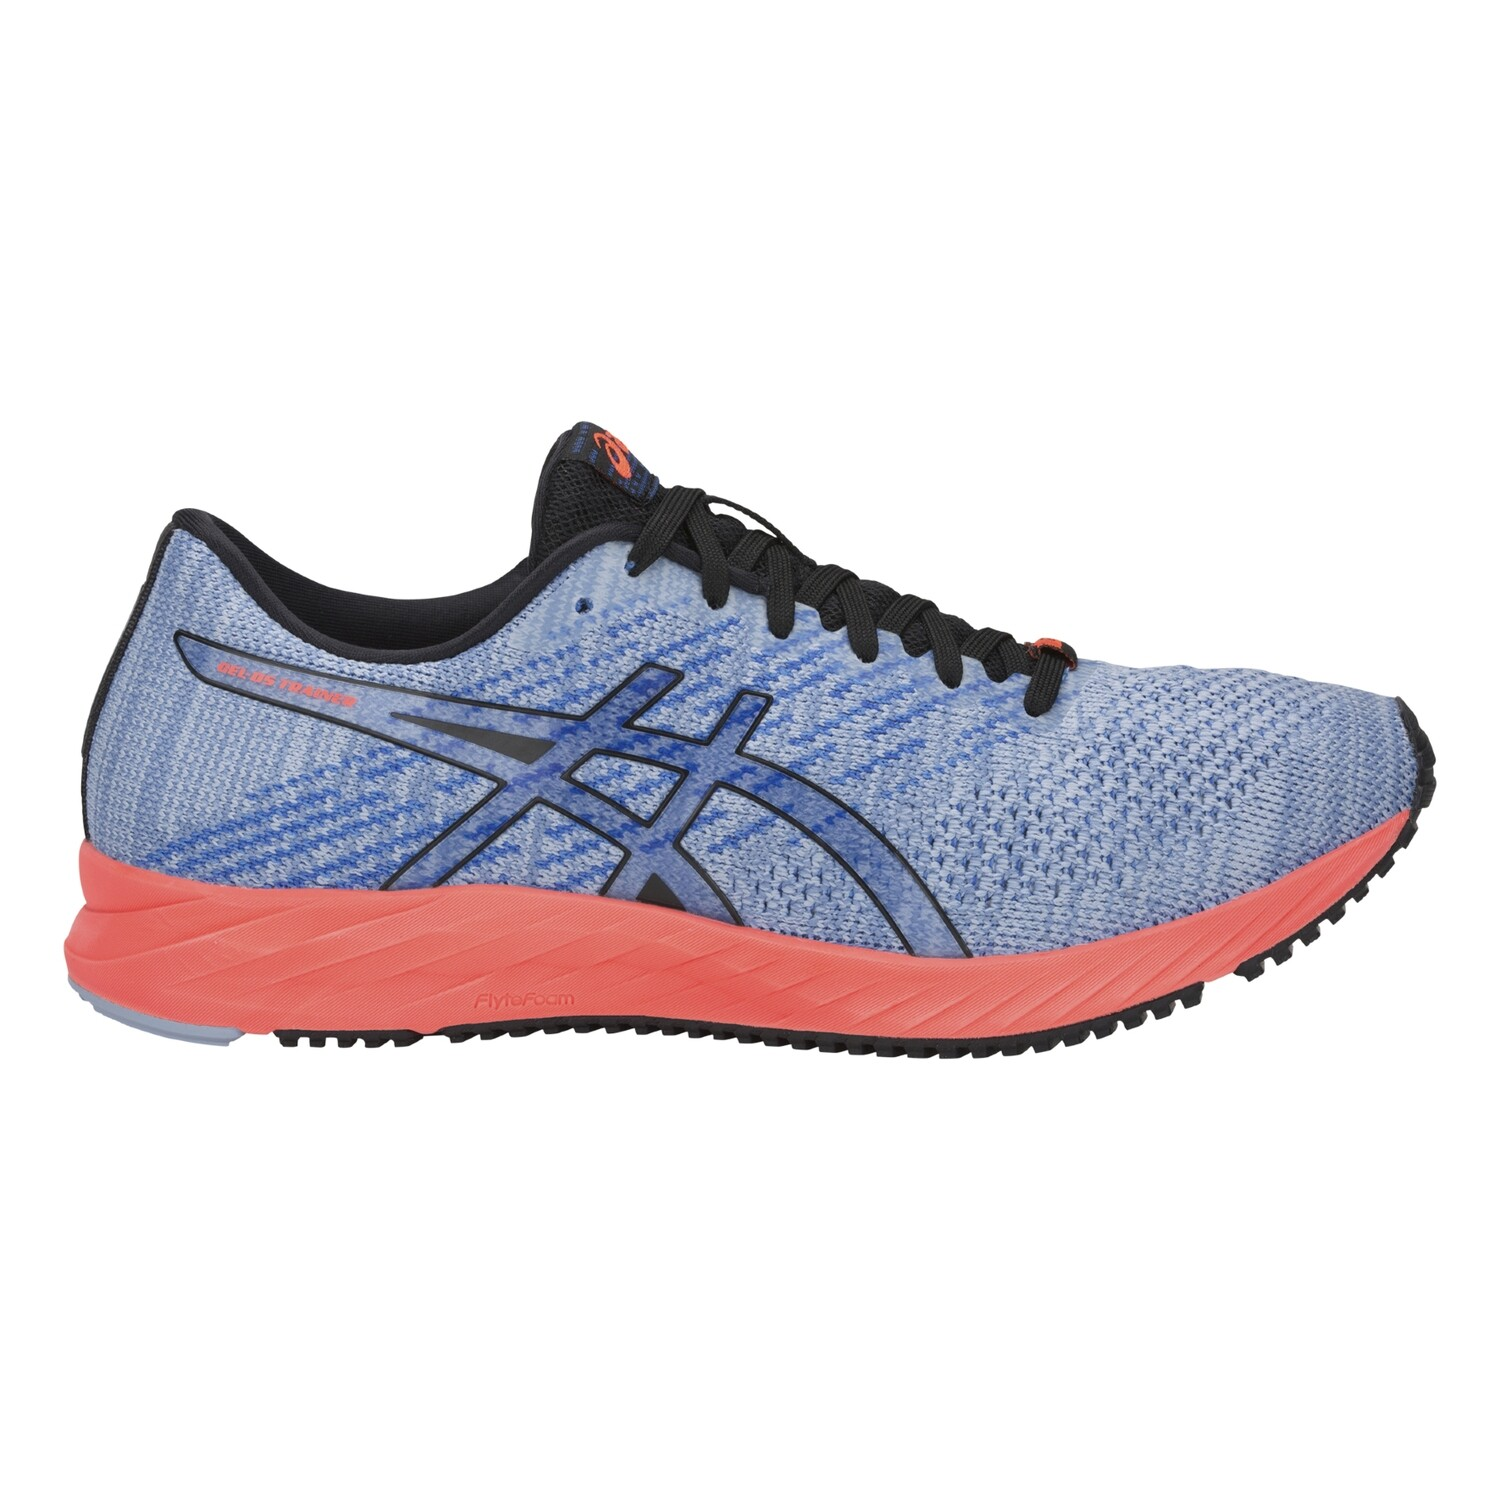 Asics DS Trainer - Speed - Support